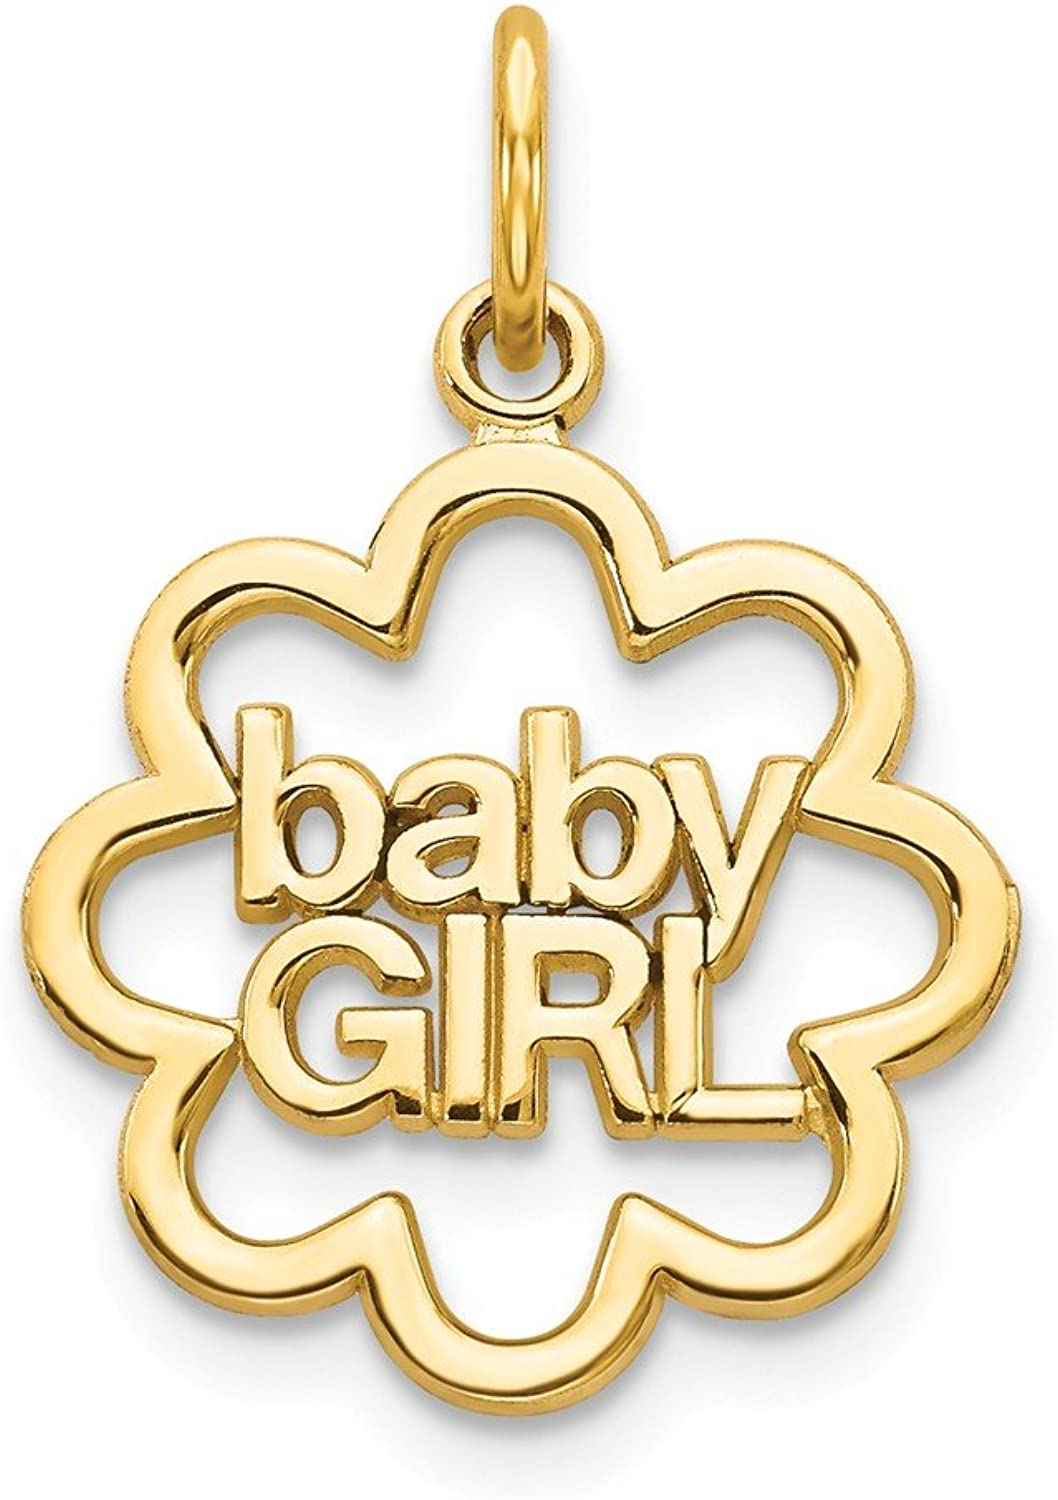 Beautiful Yellow gold 14K Yellowgold 14k Baby Girl Charm